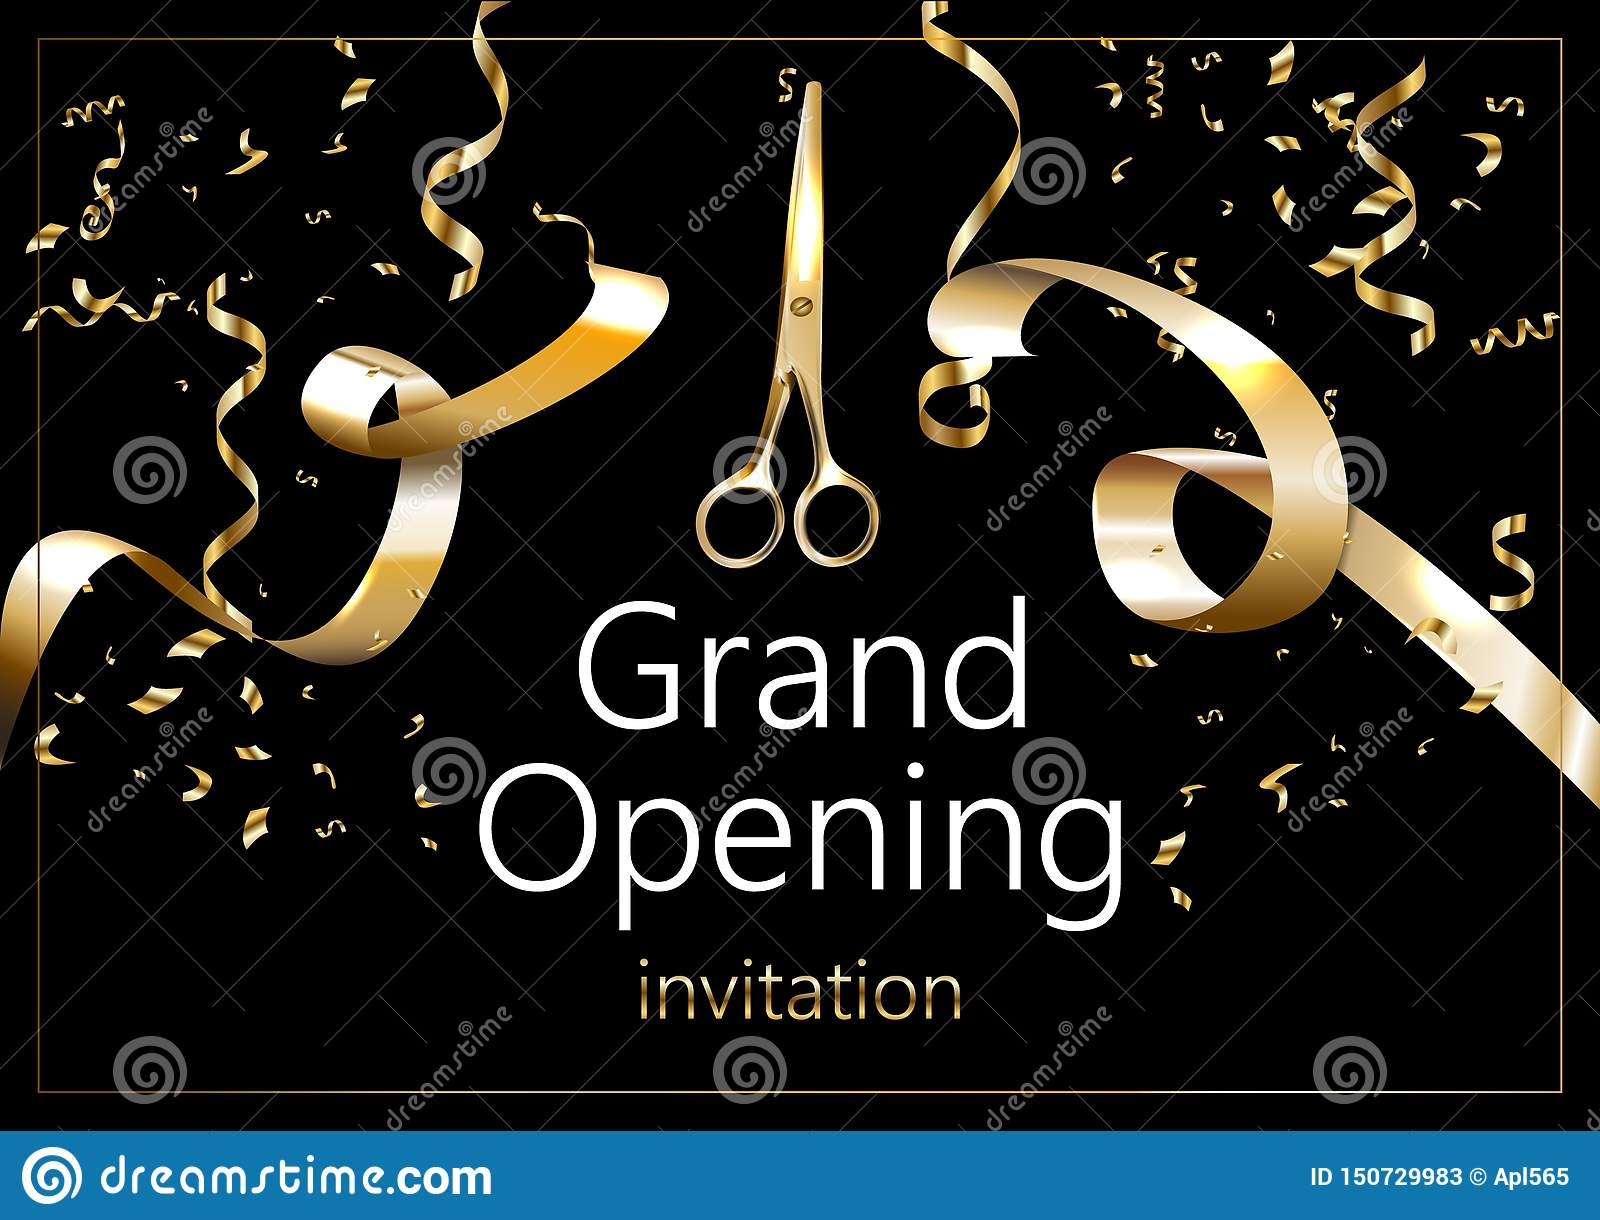 Grand opening sparkling banner. Text composition with golden splashes and ribbons. Elegant style.